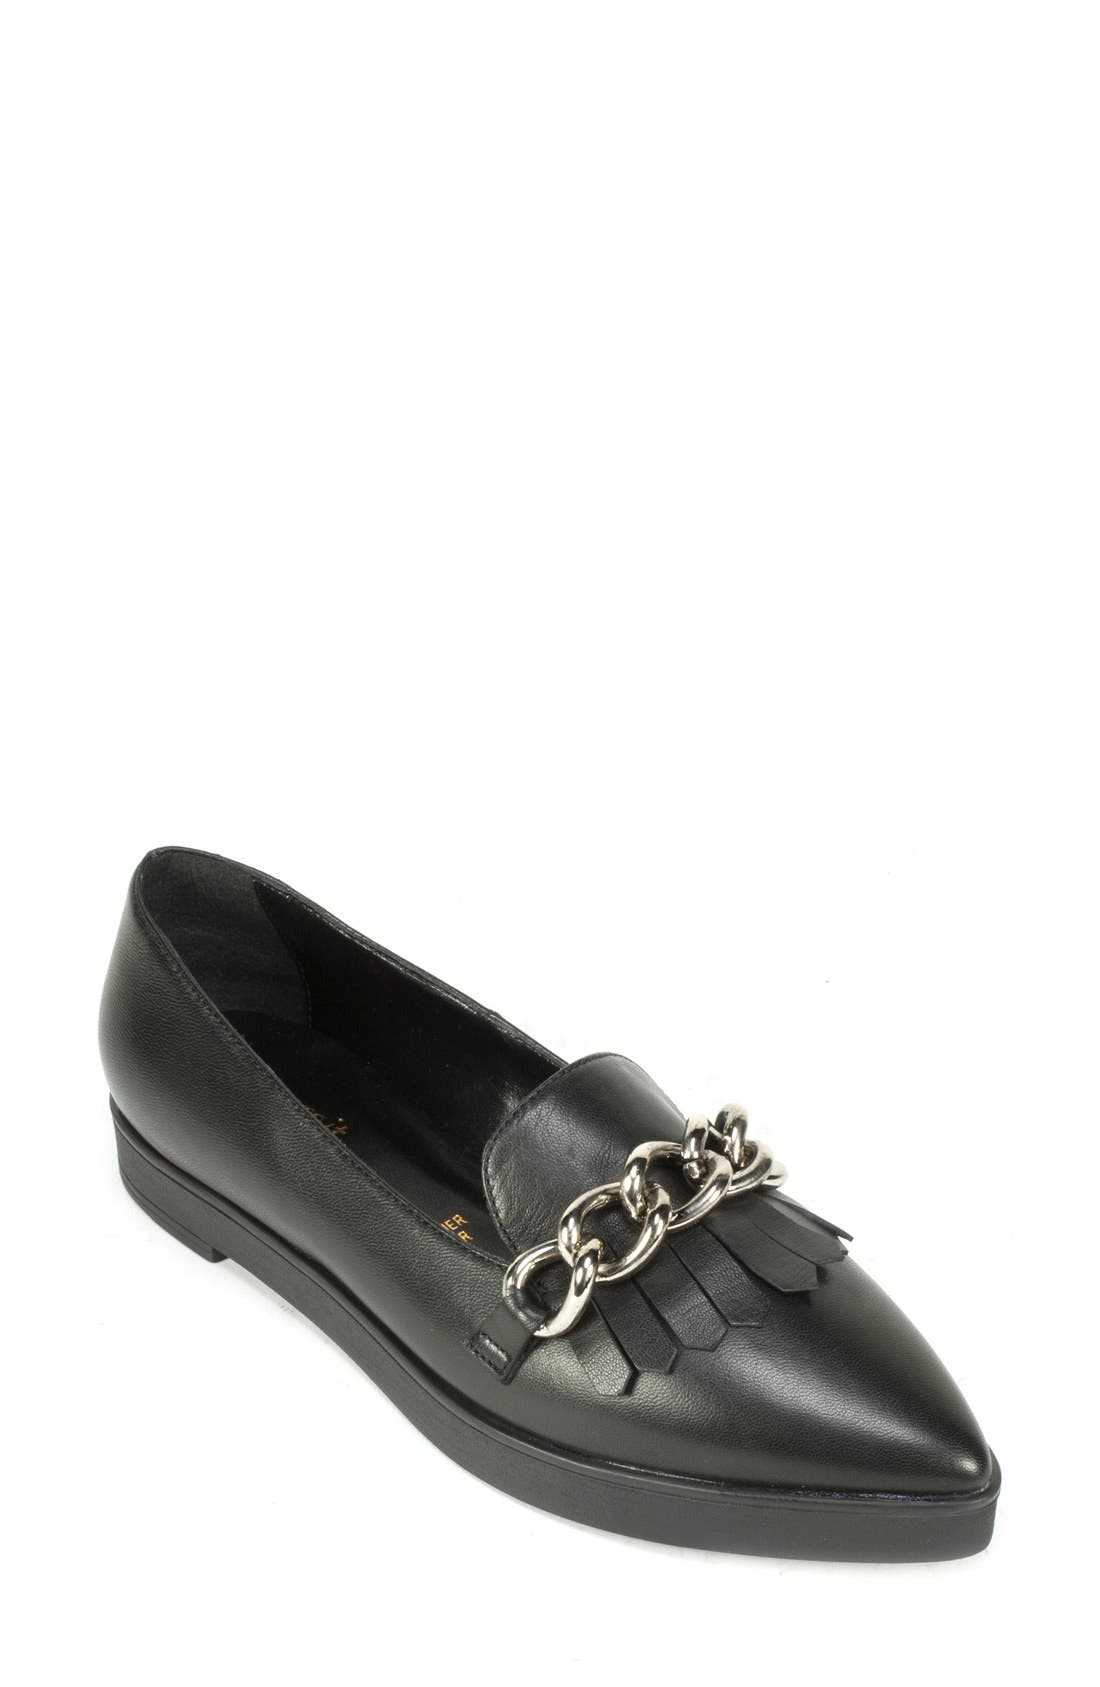 Alternate Image 1 Selected - Summit 'Elena' Fringed Platform Loafer (Women)